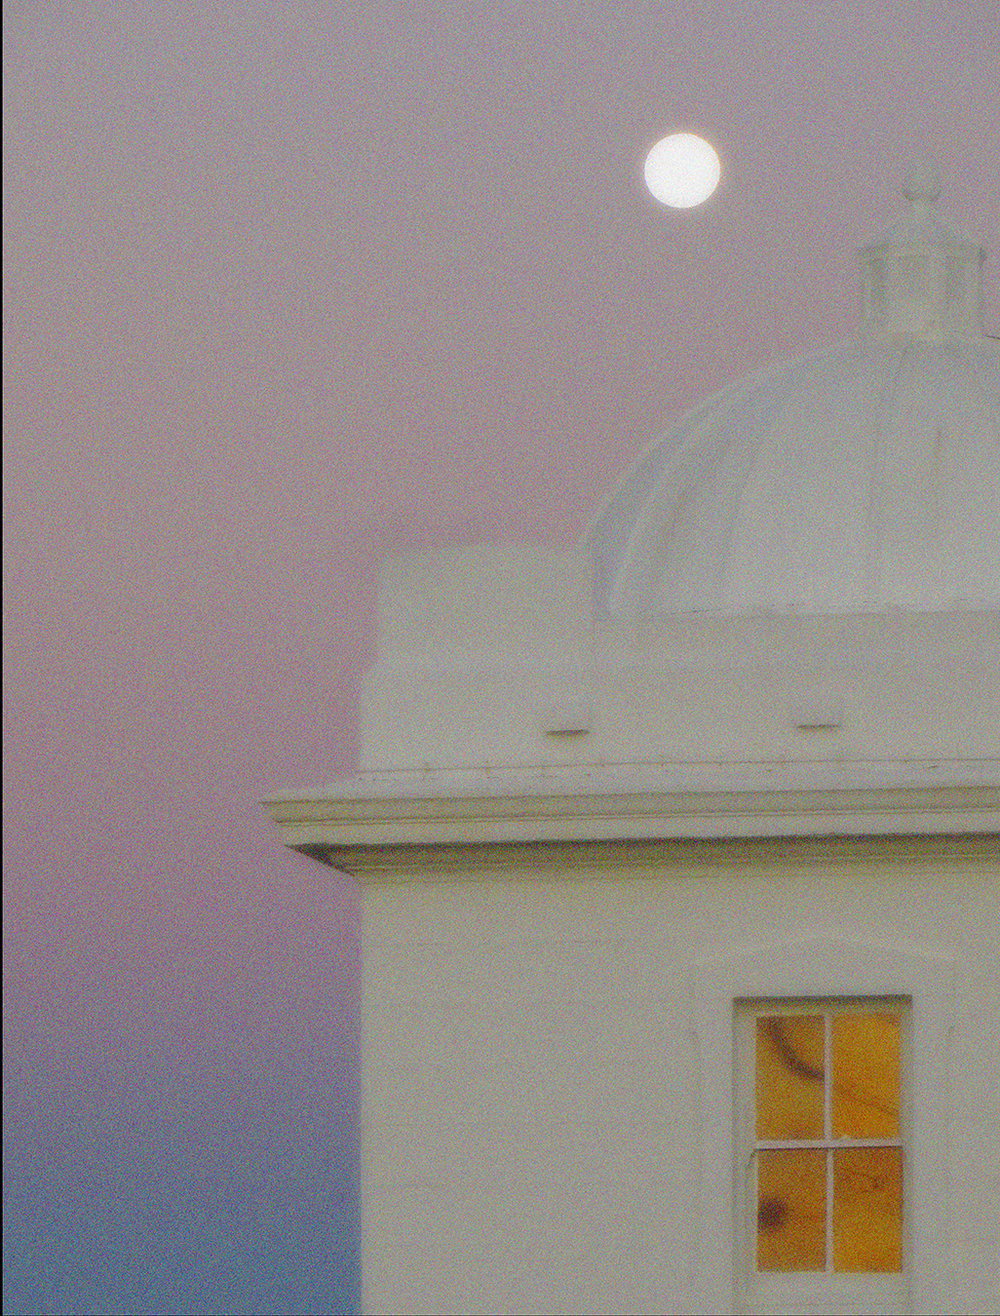 Macquarie lighthouse, moonrise, Vaucluse, Sydney, New South Wales